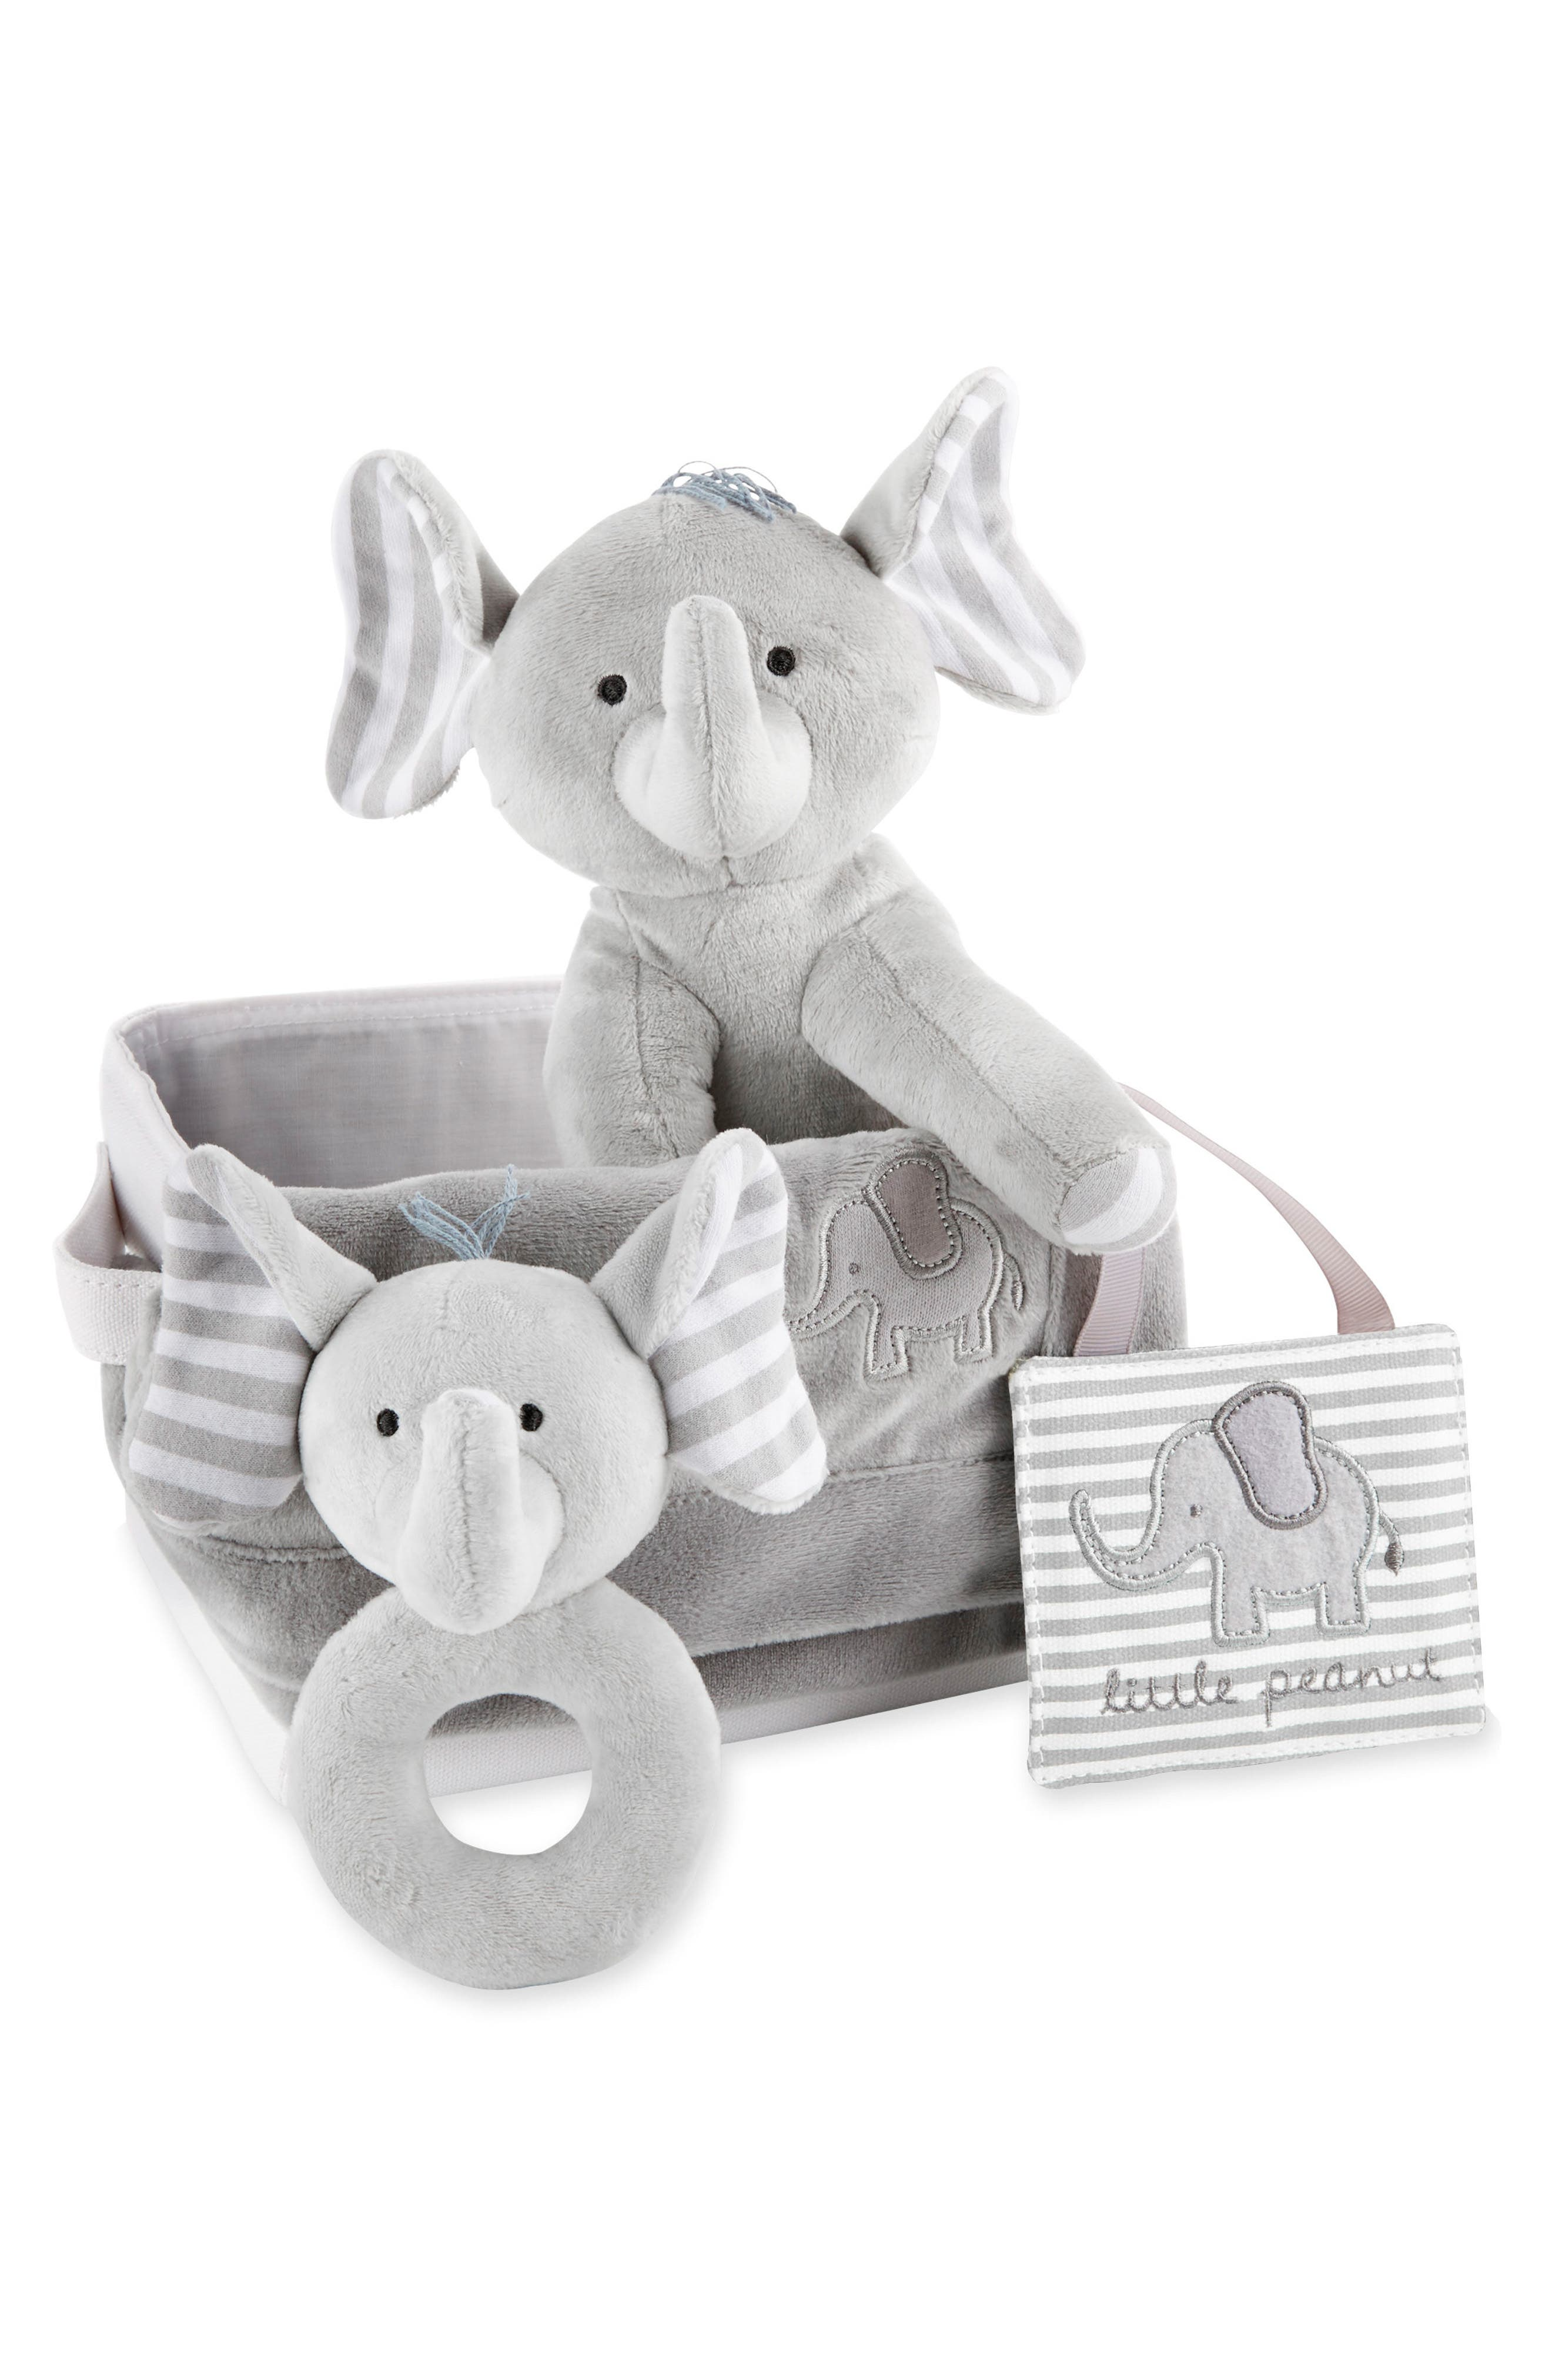 Little Peanut Elephant 5-Piece Gift Set,                             Alternate thumbnail 3, color,                             GREY AND WHITE